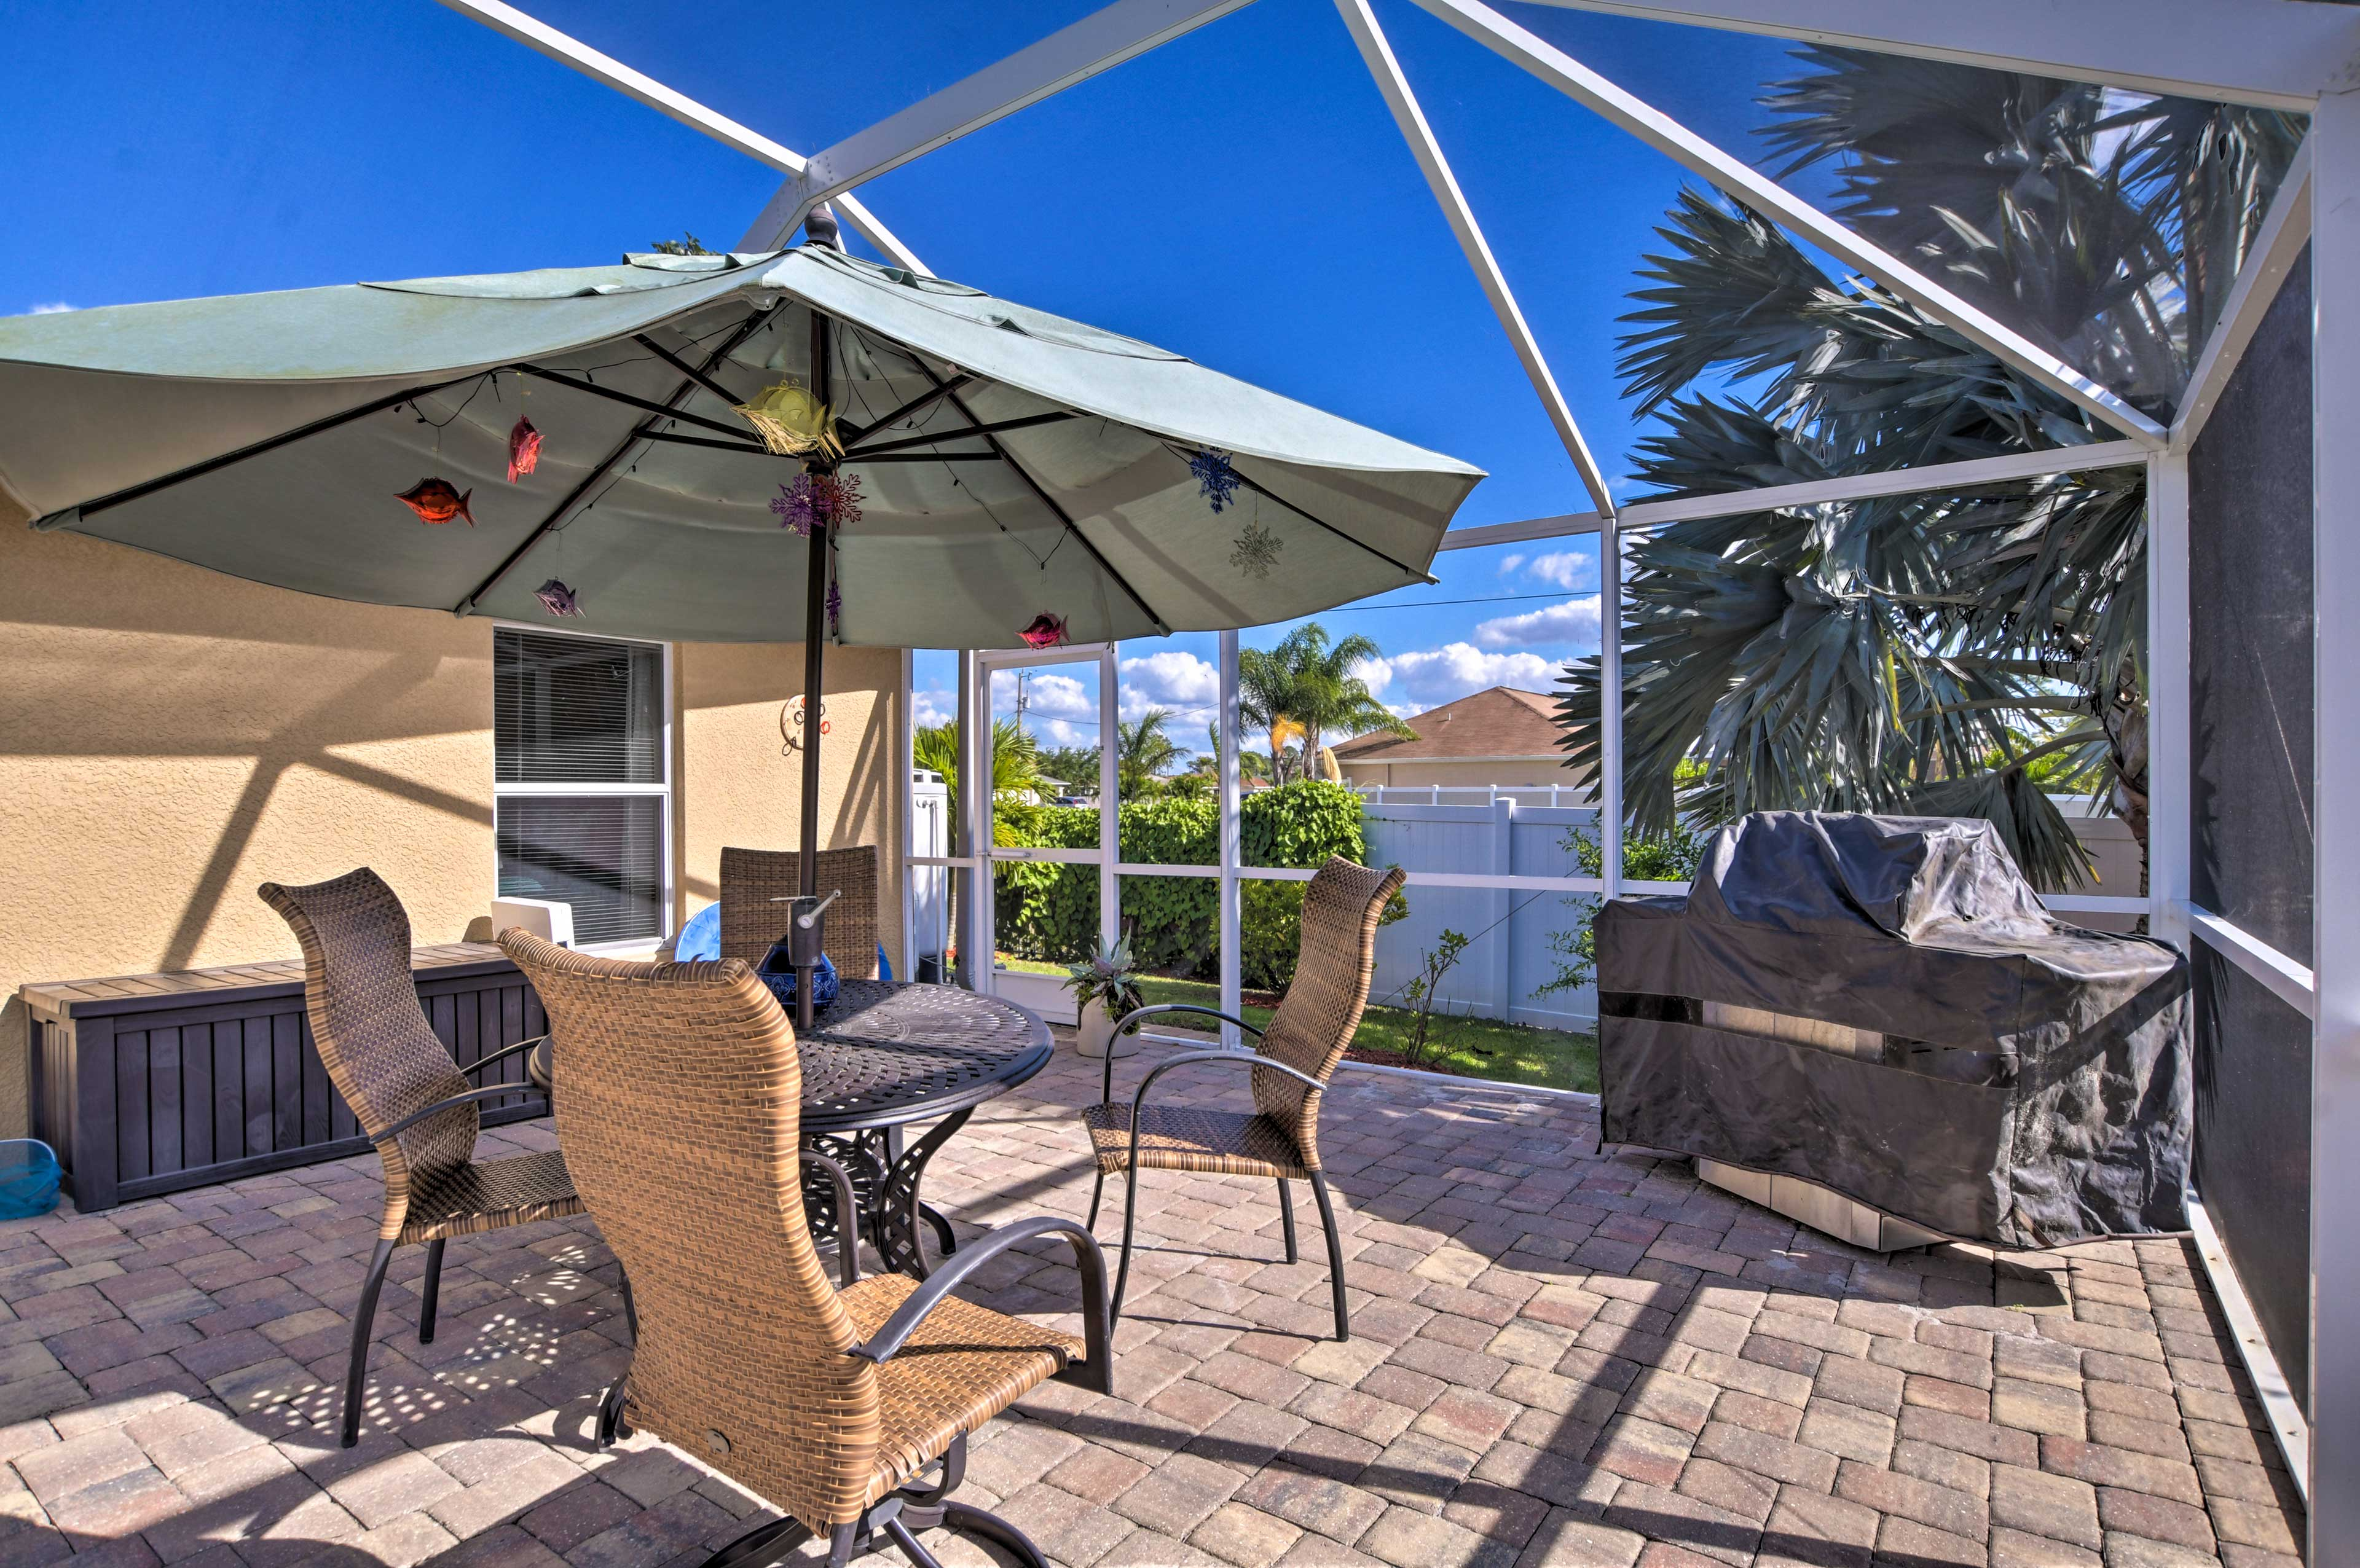 Enjoy barbecues while palms trees sway right outside this covered patio.